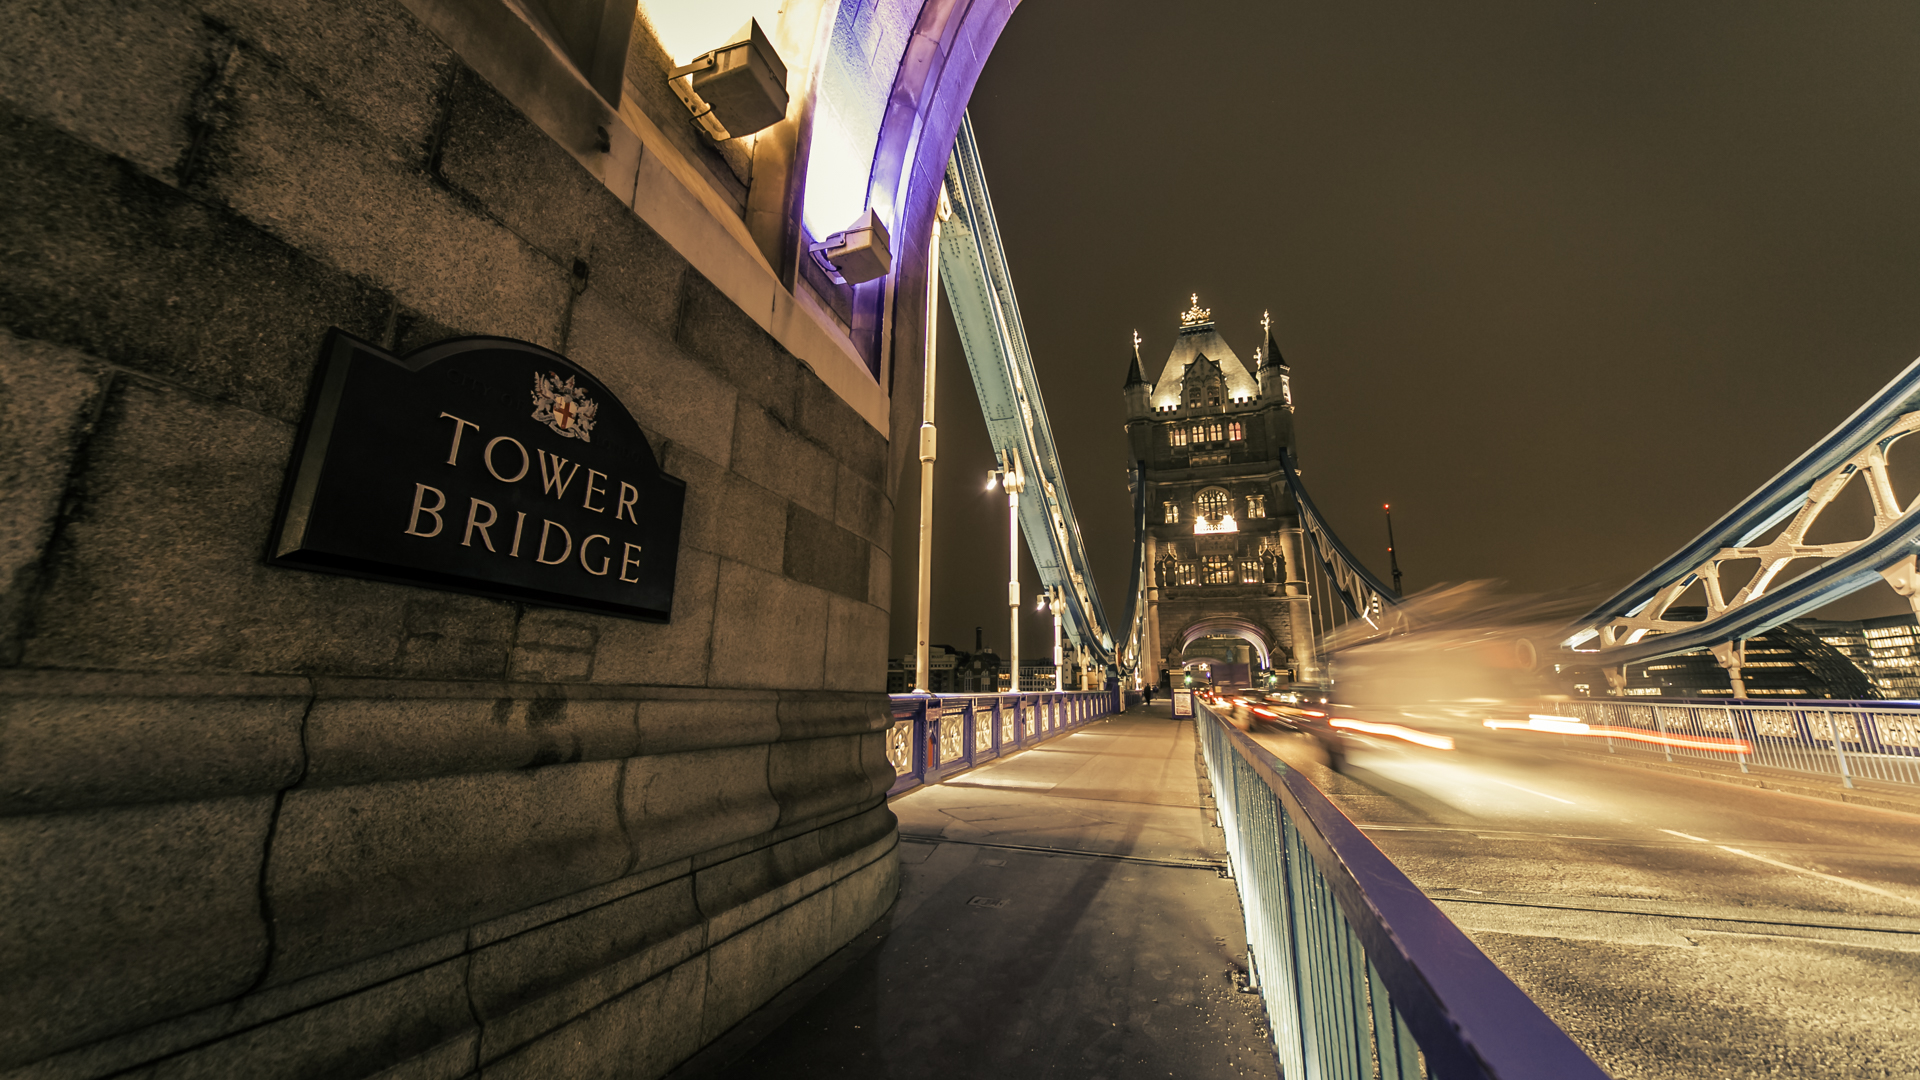 tower-bridge-timelapse-2.jpg